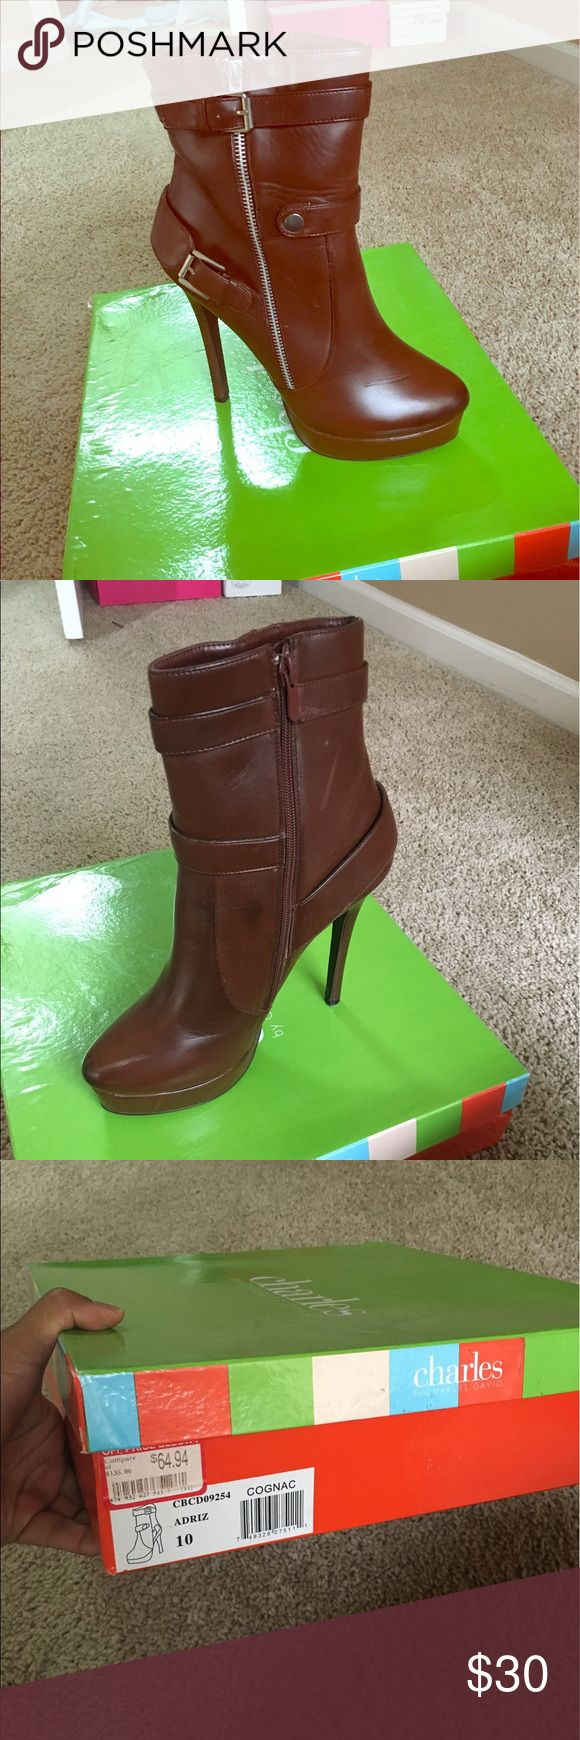 Charles David Women's Boots Designer: Charles David. Size 10. Color: Cognac with silver accents. Charles David Shoes Heeled Boots